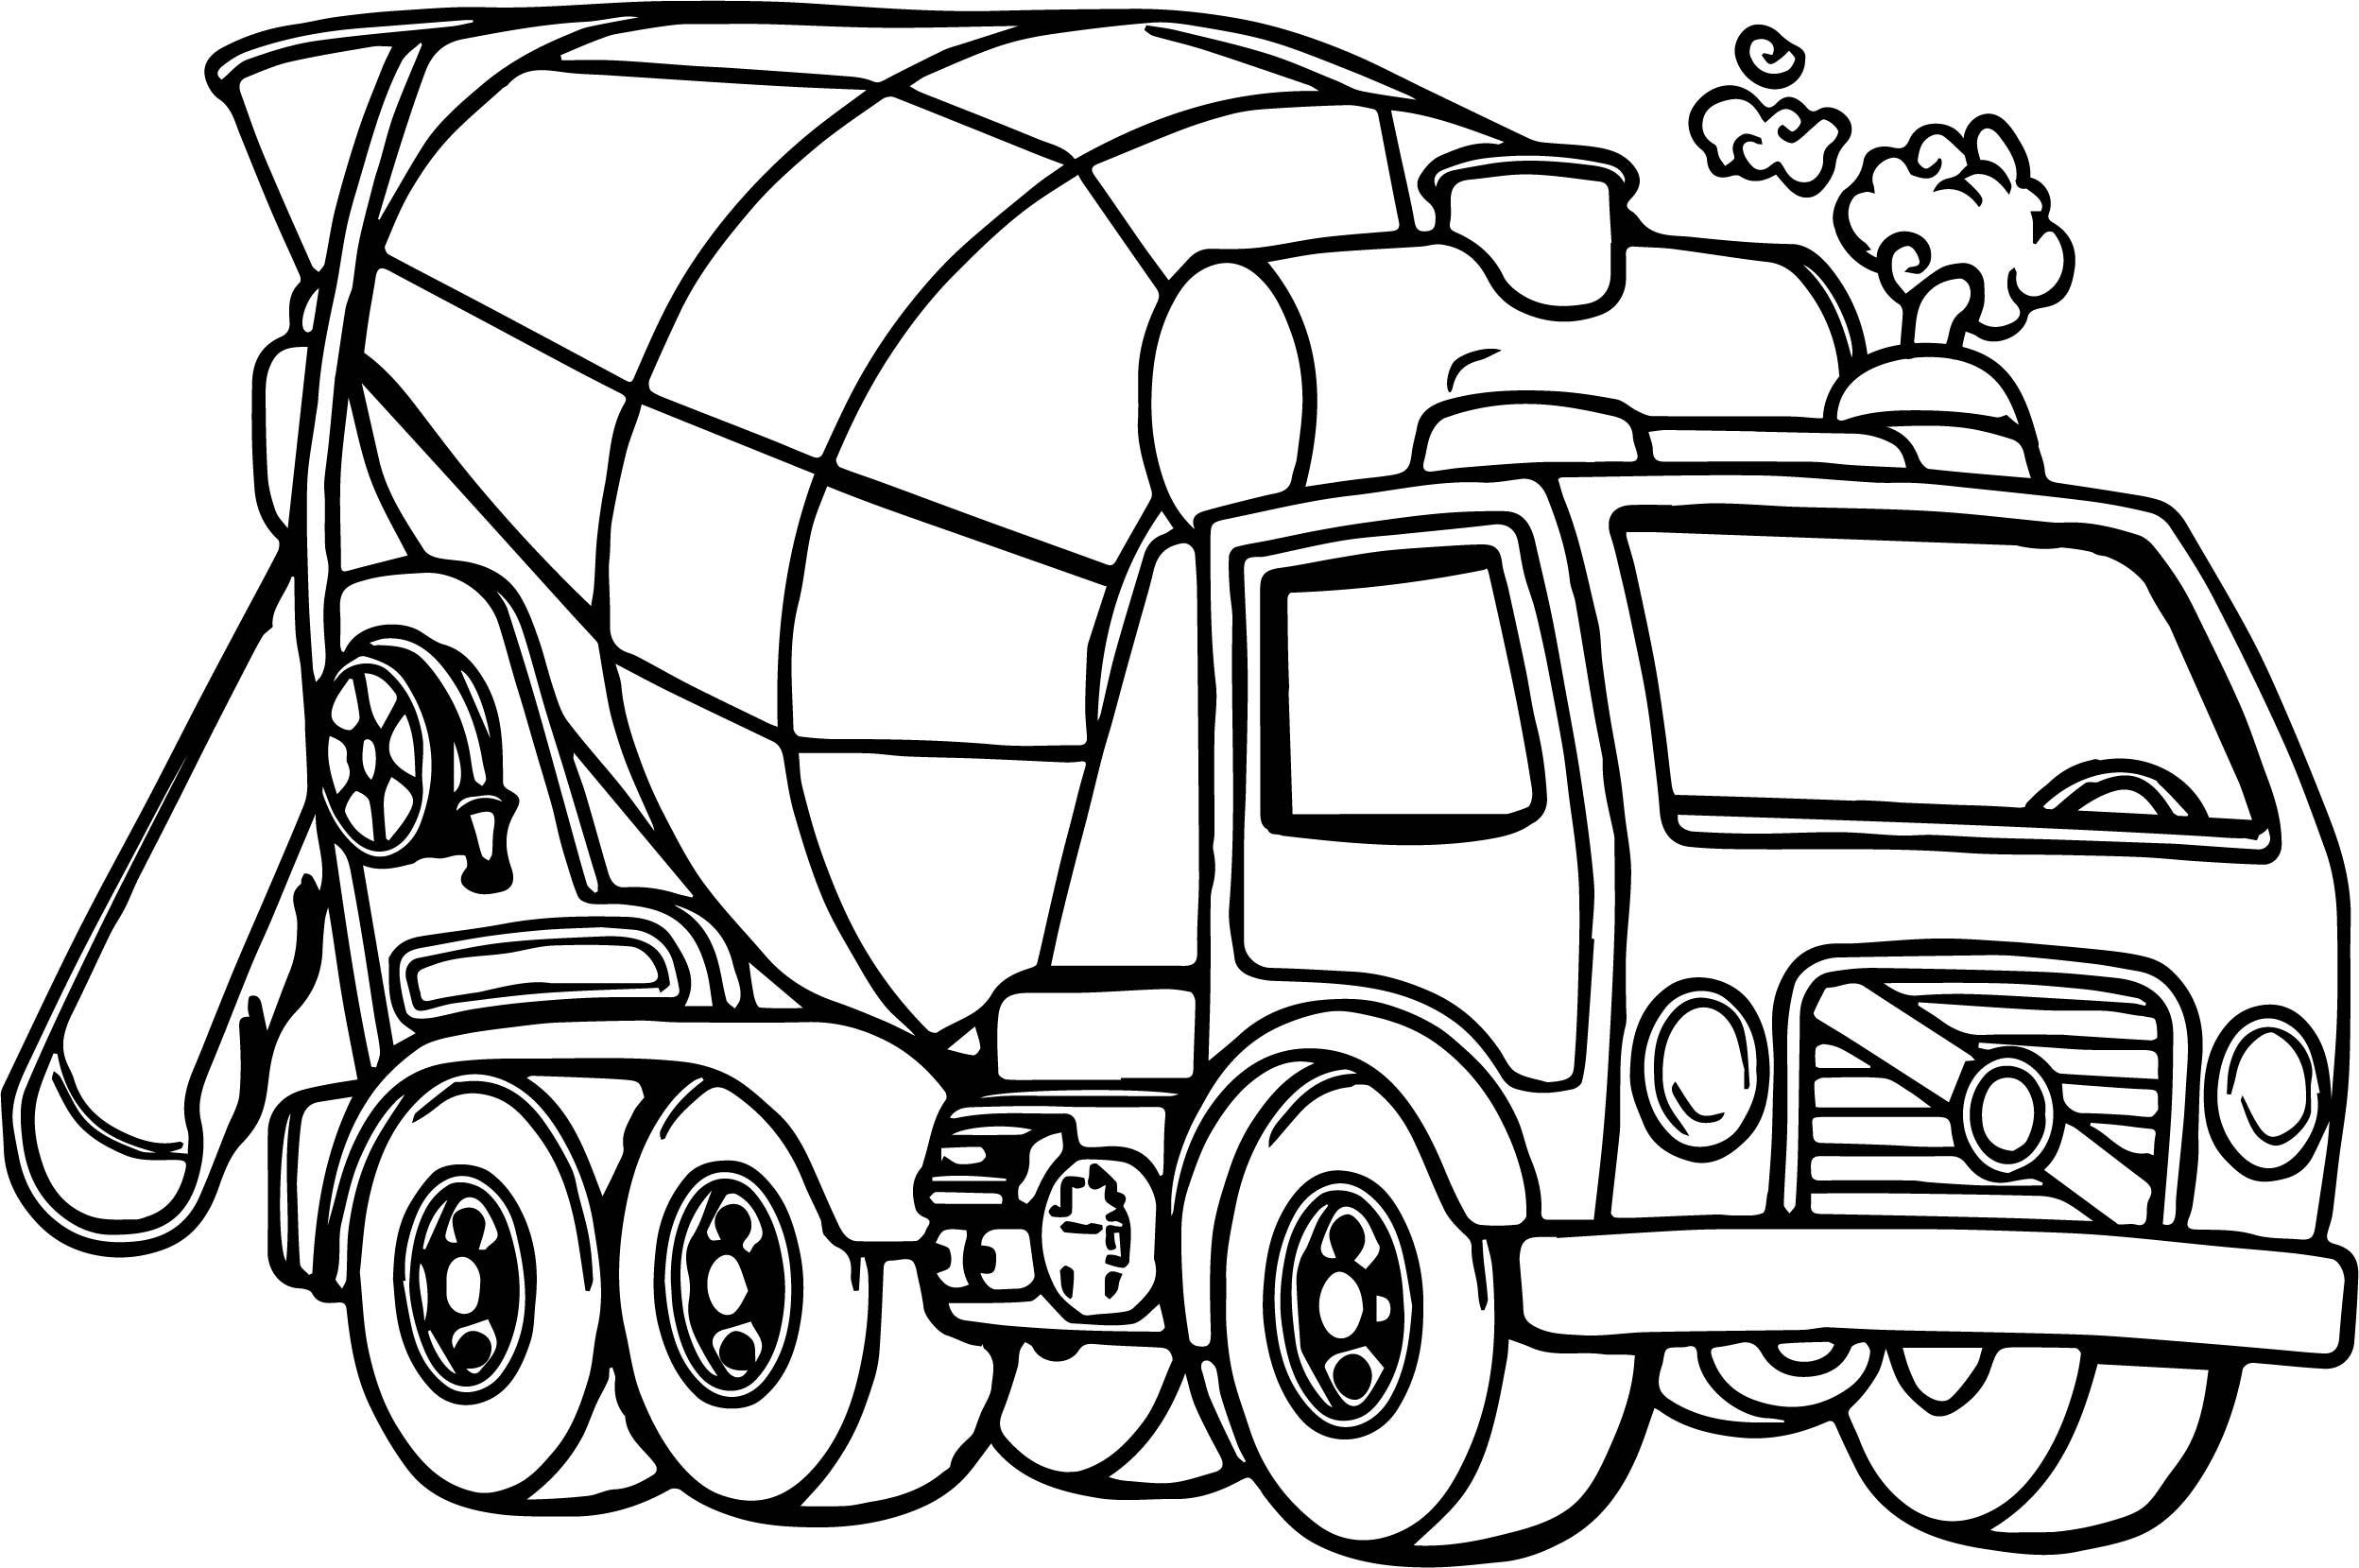 2496x1659 Awesome Cement Mixer Truck Coloring Pages Gallery Printable